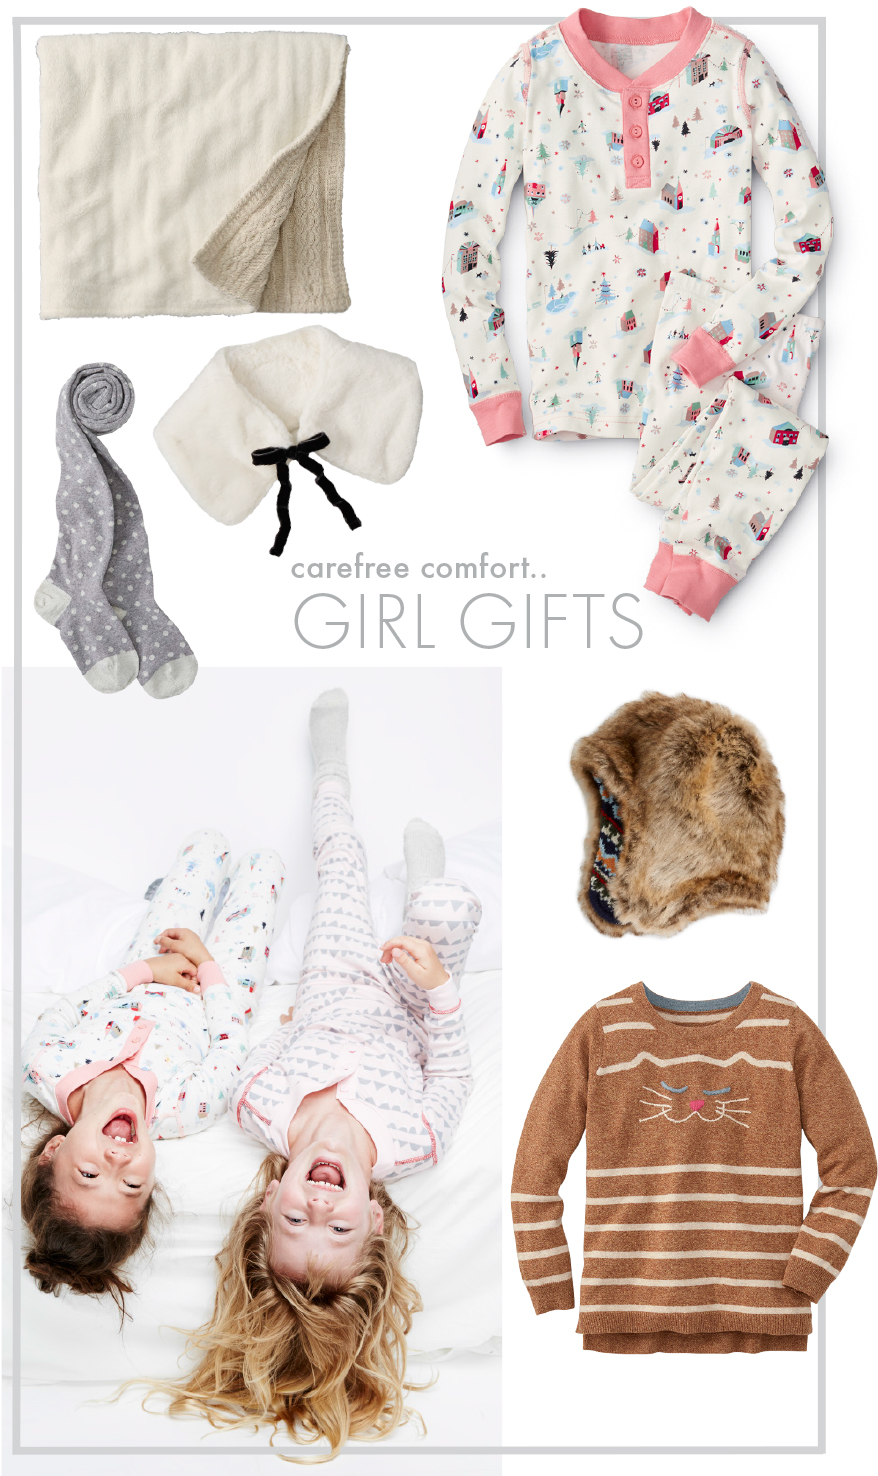 Girl Soft Sleep Gift Guide - Hanna Andersson